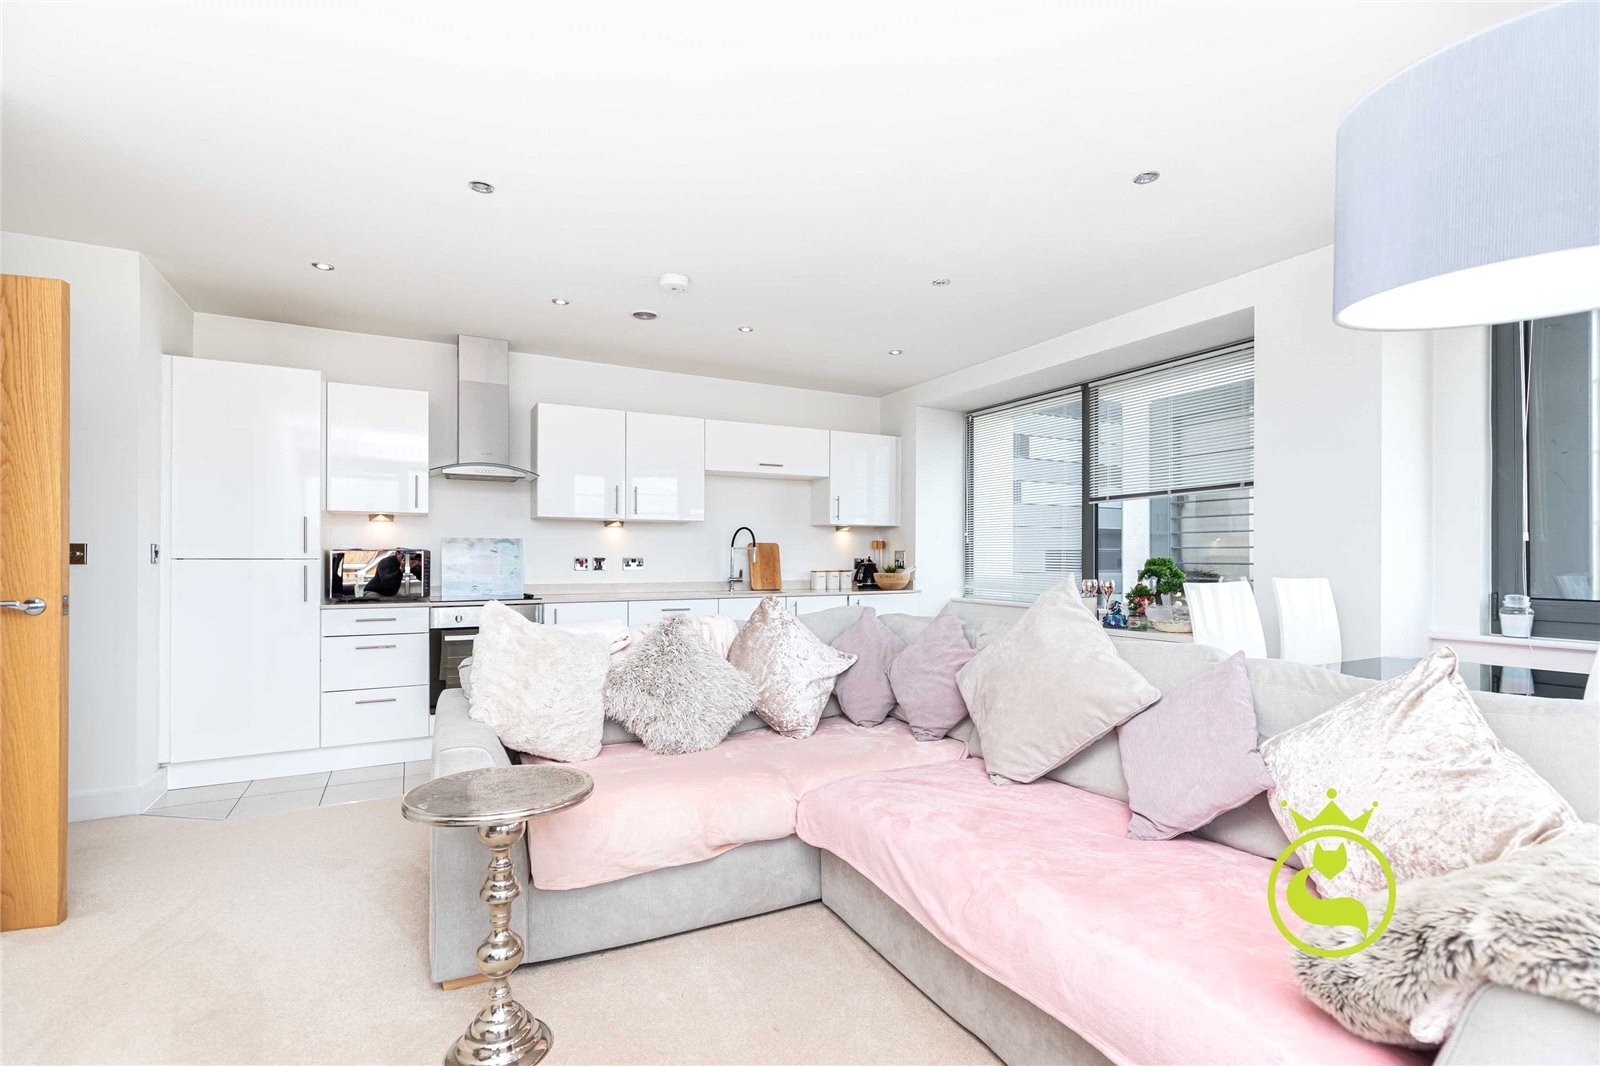 2 bed apartment for sale in Altitude, 56-58 Parkstone Road, BH15